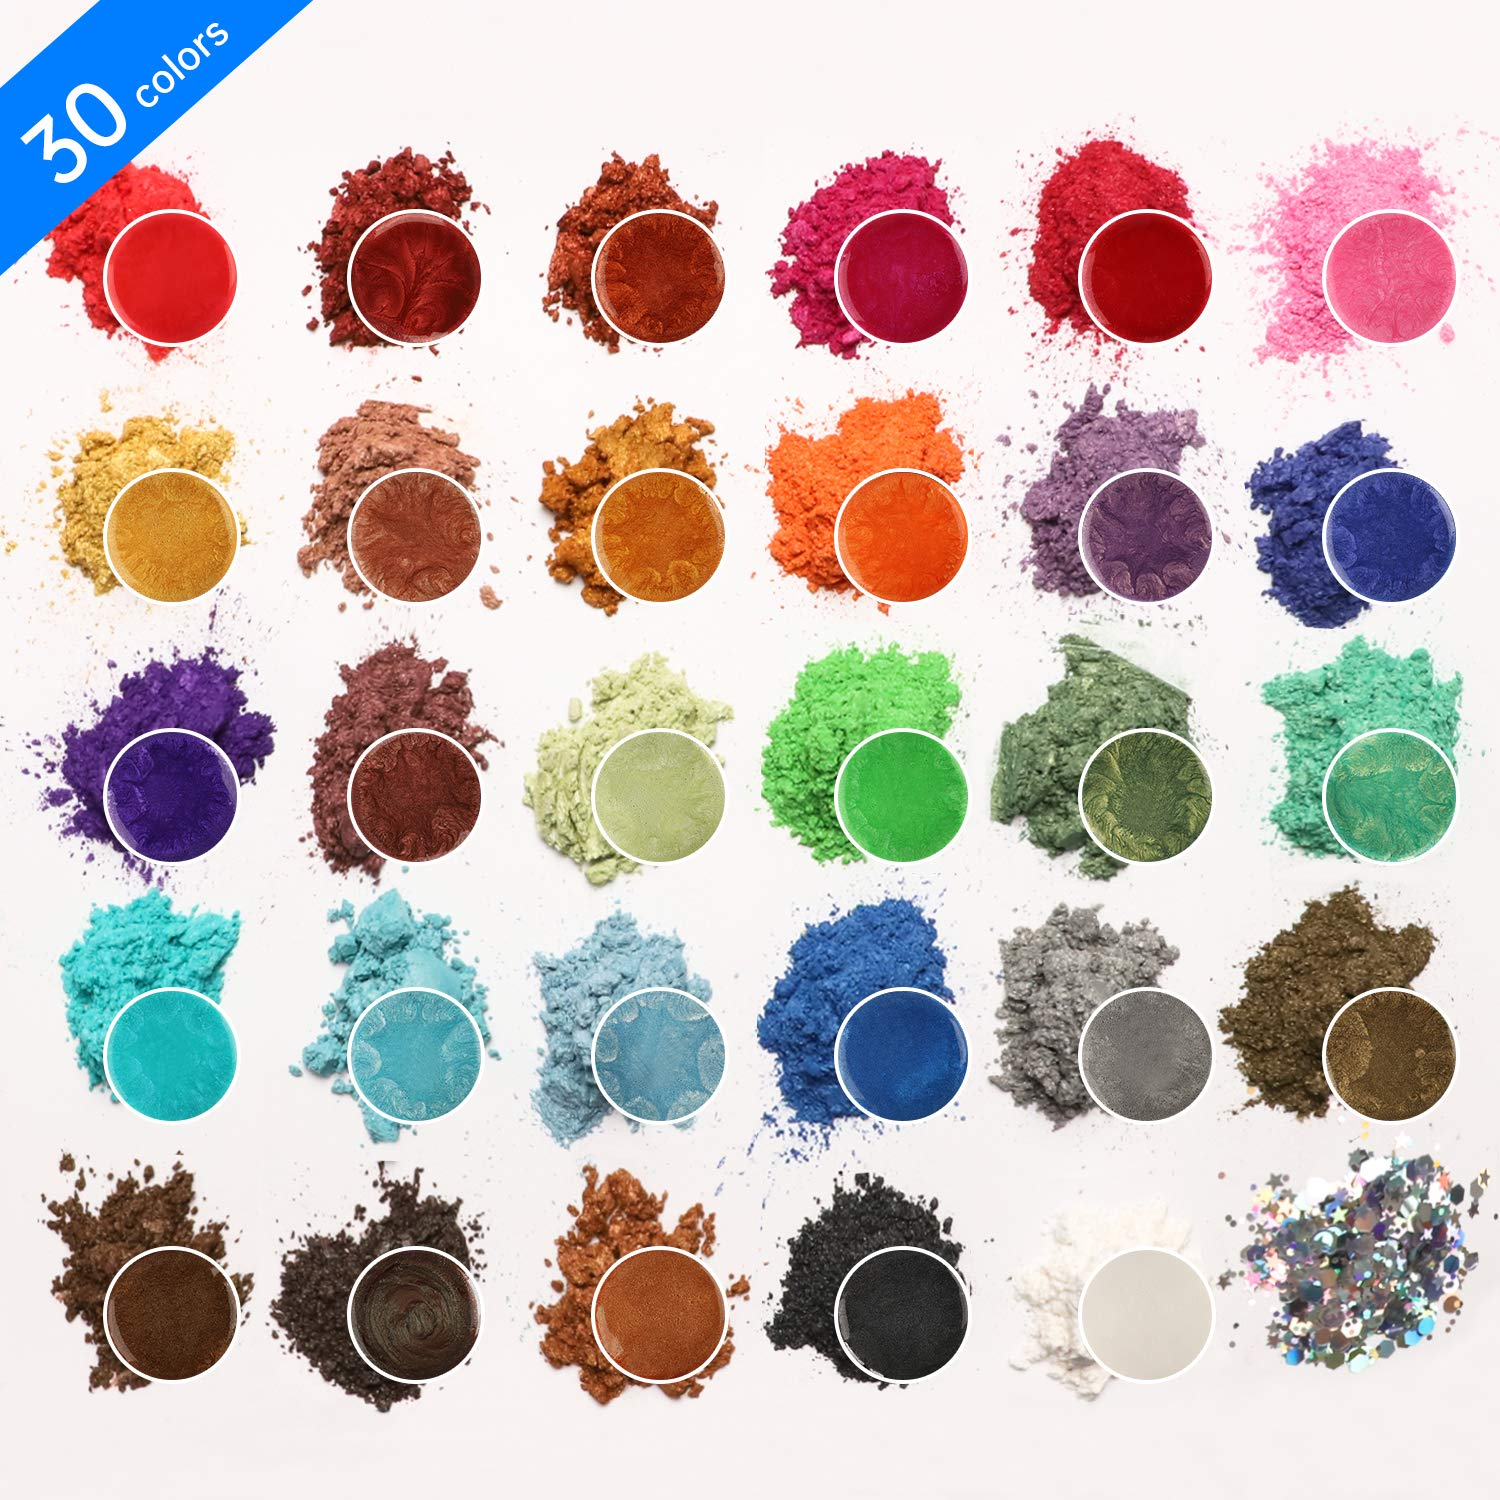 Mica Powder Epoxy Resin Dye - 29 Powdered Color Pigments + 1 Glitter (150G/5.3OZ) - for Soap Slime Bath Bombs Makeup Colorant